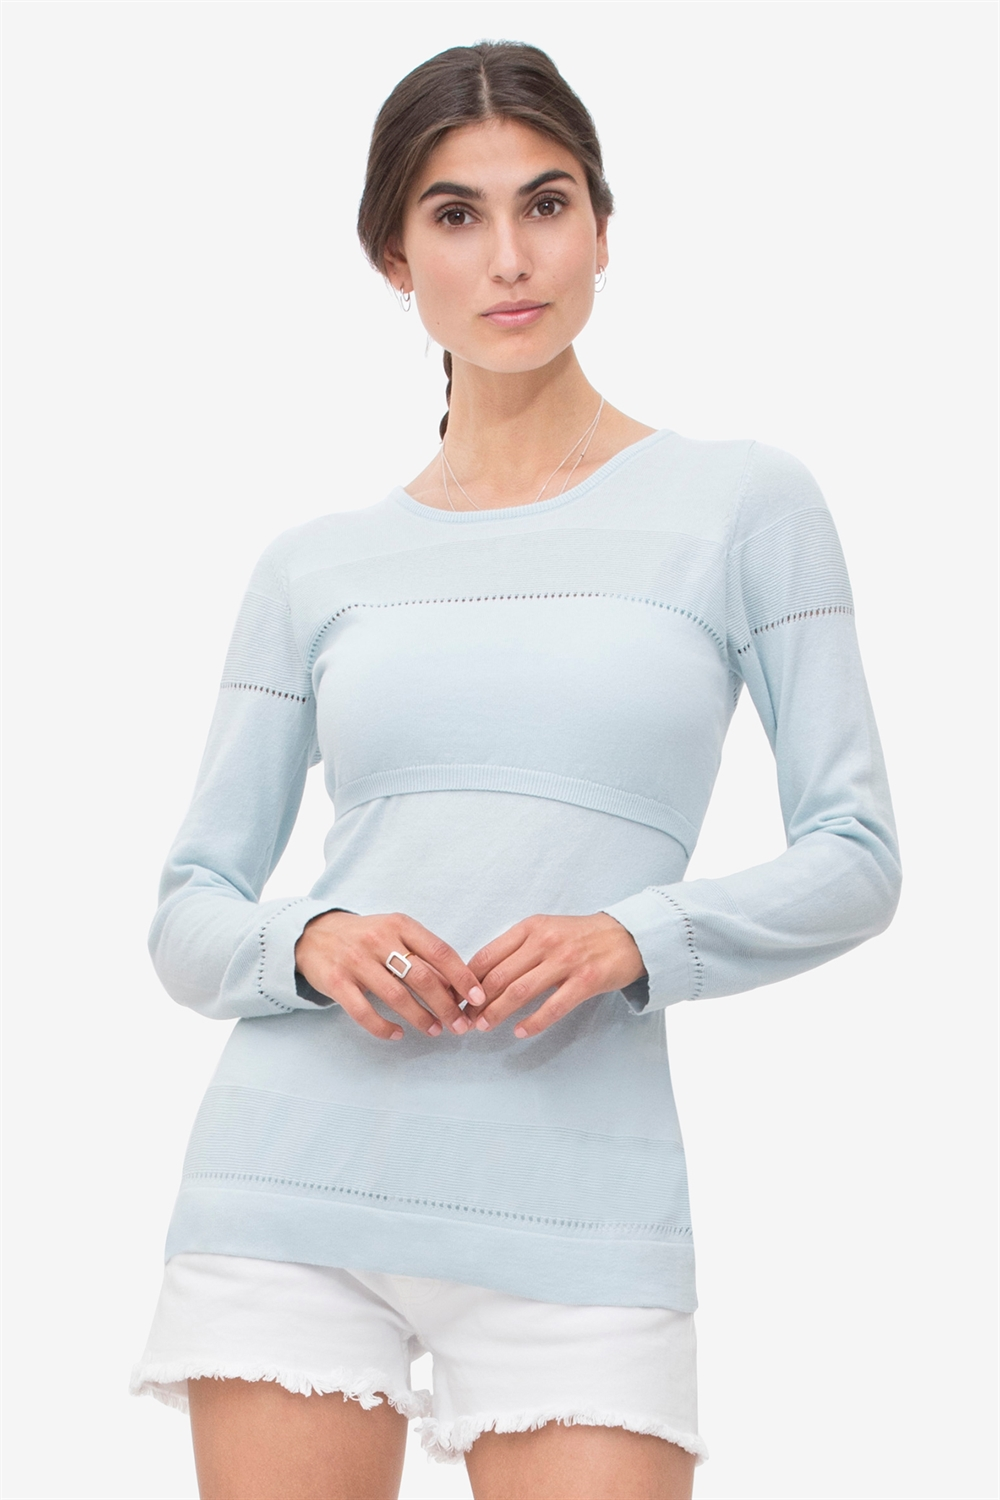 Aqua nursing shirt with fine knit pattern - 100% organic cotton